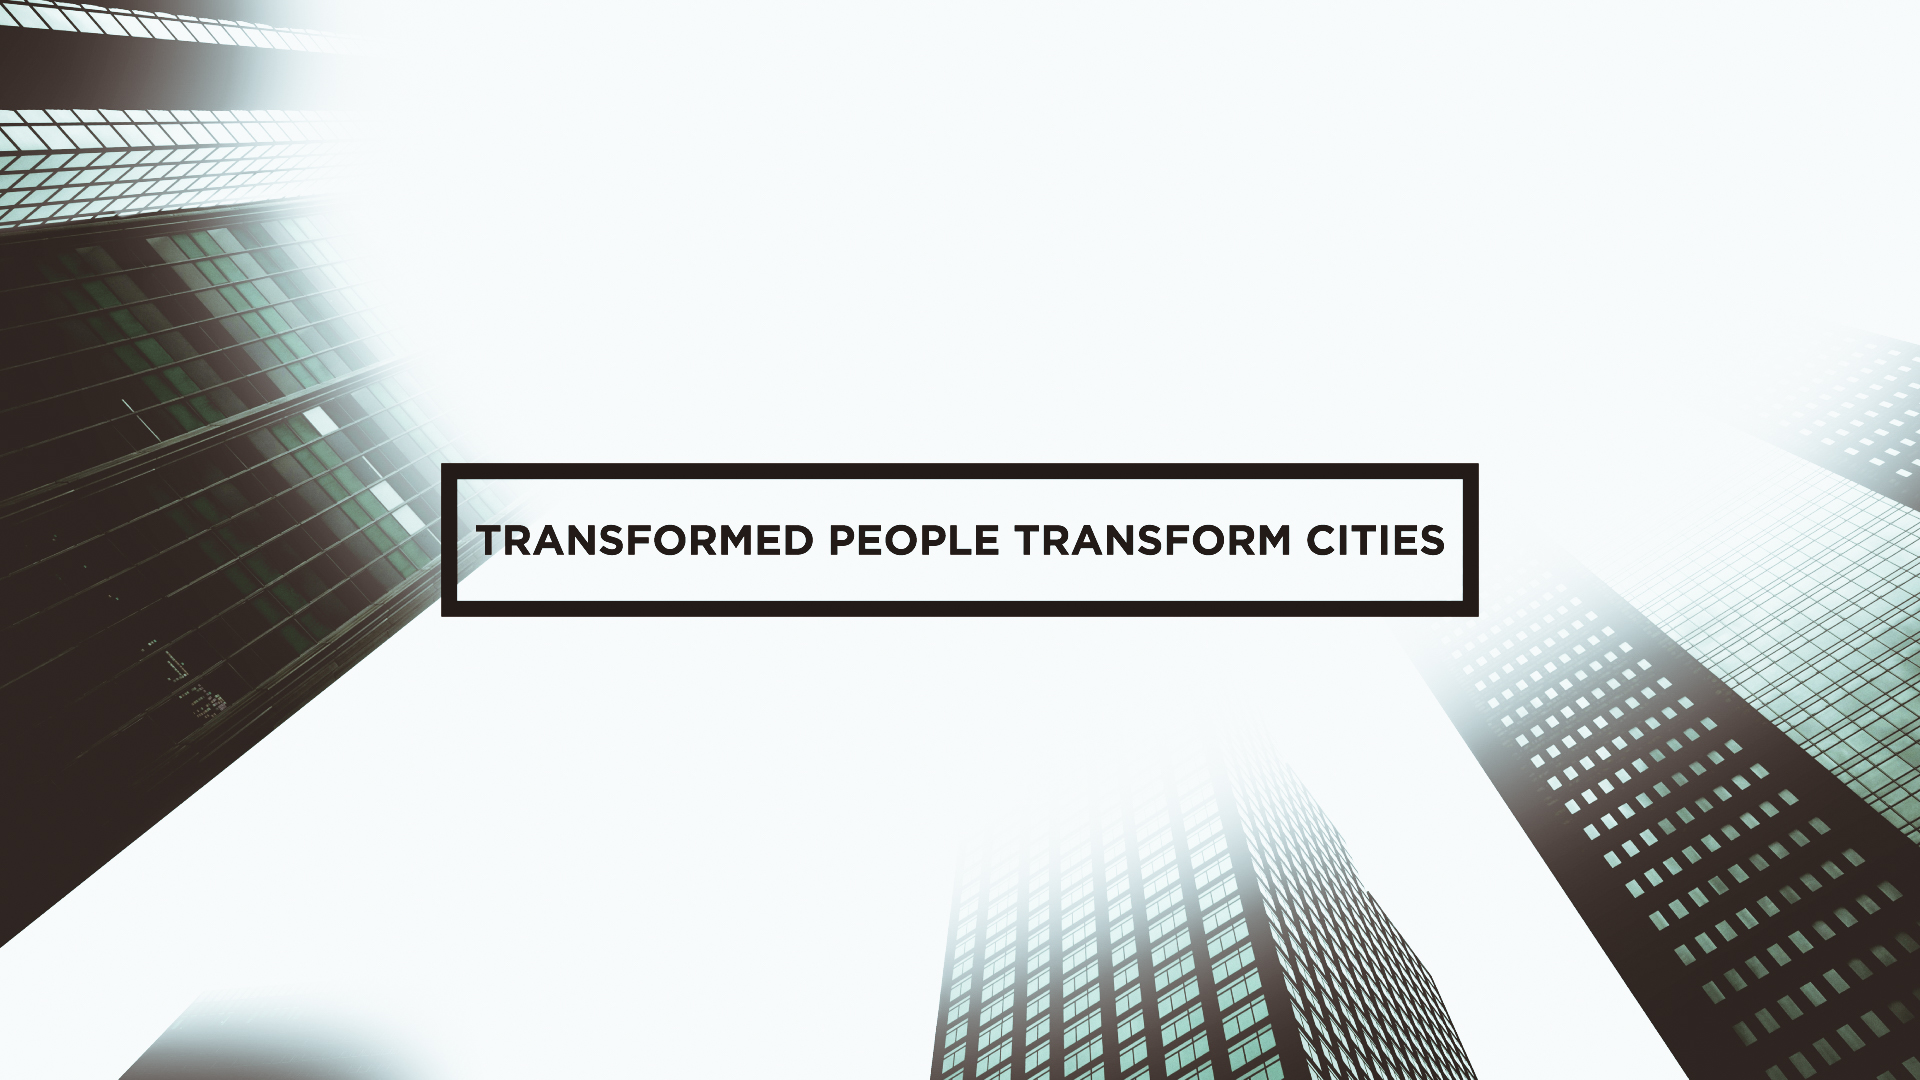 8. Transformed People Transform Cities - As we are deeply transformed by the Gospel, we bring transformation to our families, neighborhoods, schools and workplaces. As we practice the way of Jesus together, we want to be marked by this type of deep and wide ministry.